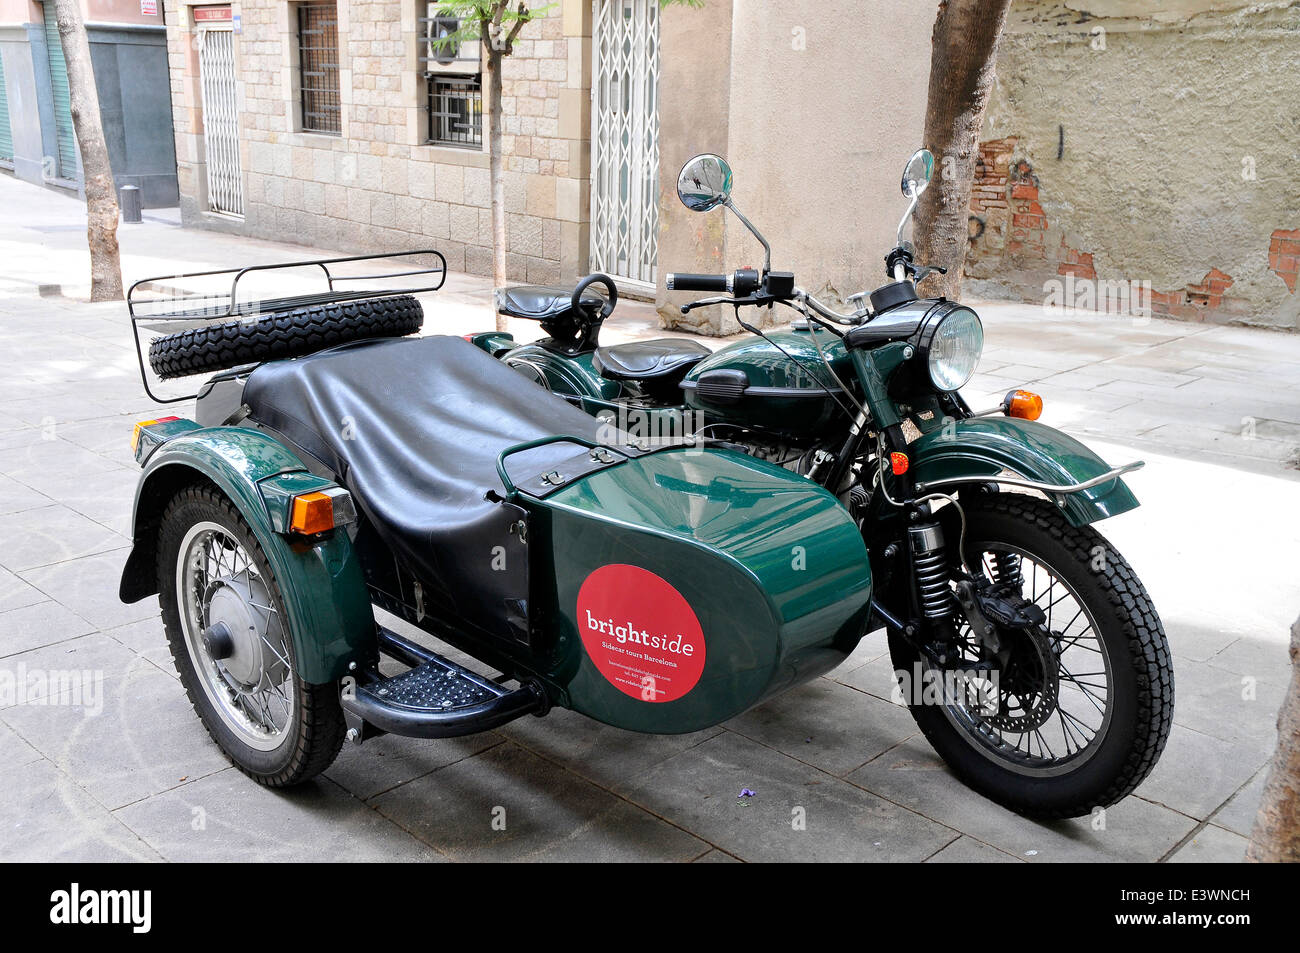 motorcycle with sidecar Barcelona touristic offer for tours around the city - Stock Image